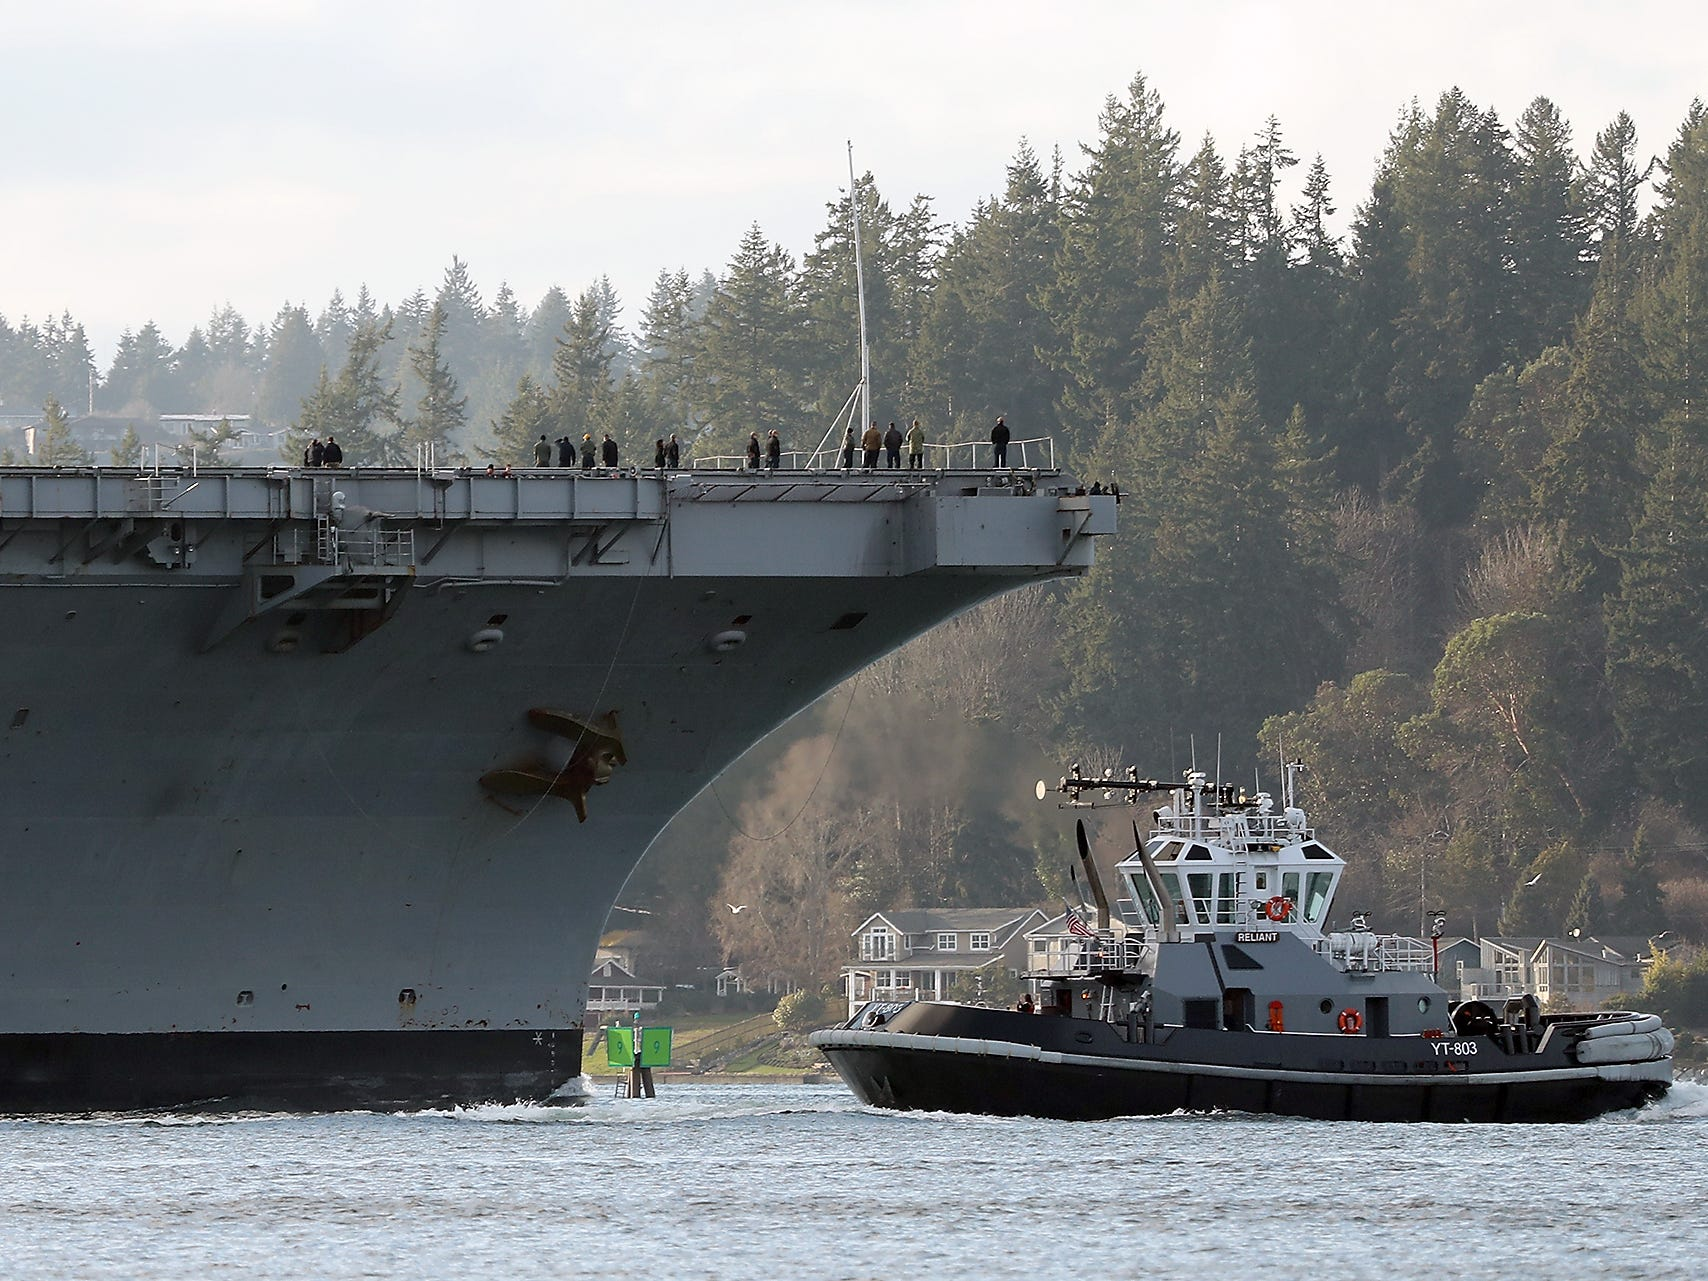 The USS Carl Vinson makes its way to Naval Base Kitsap-Bremerton as viewed from Bainbridge Island on Sunday, January 20, 2019.